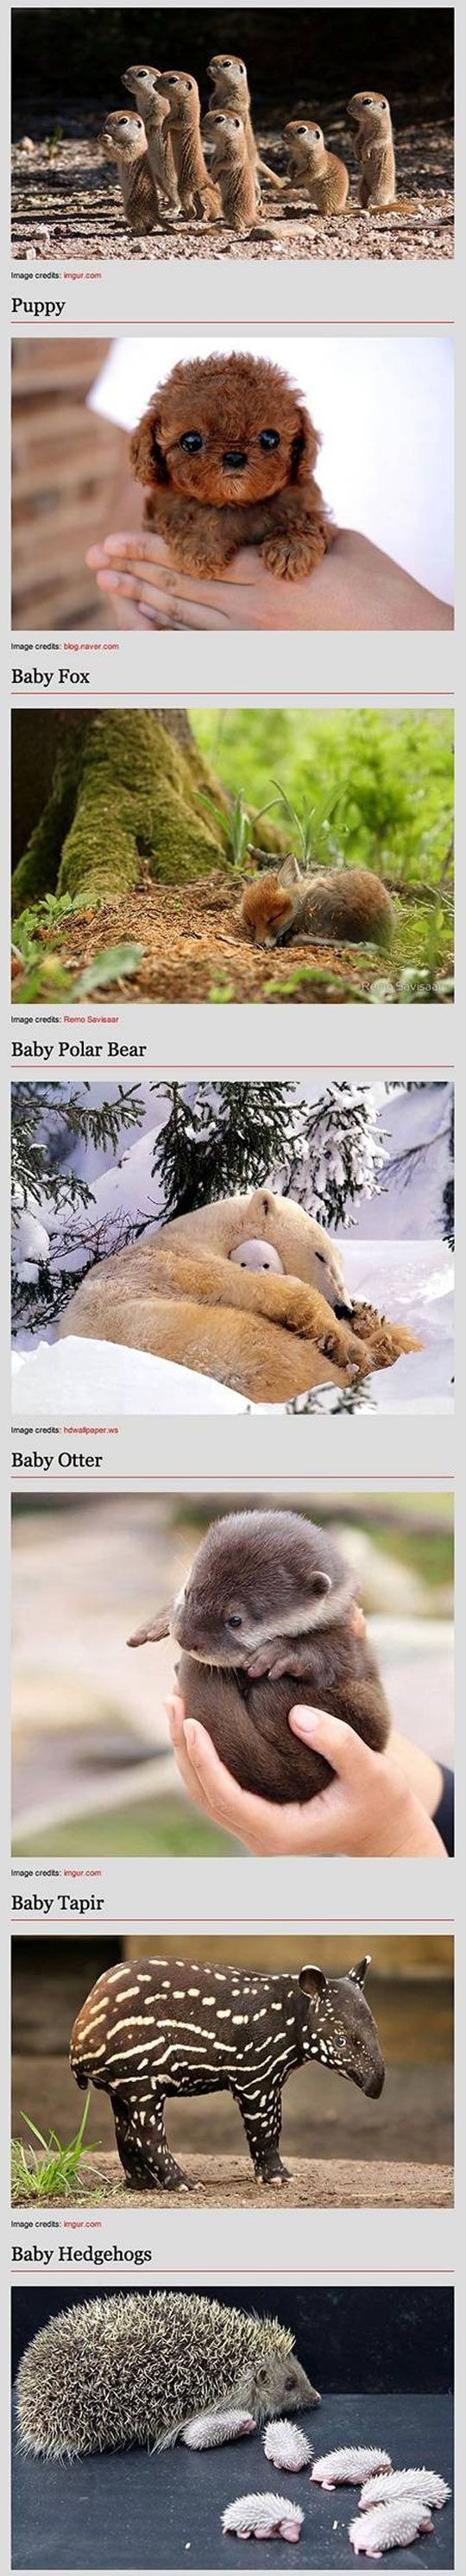 Some things are so cute they make me cry! Like the baby albino koala!